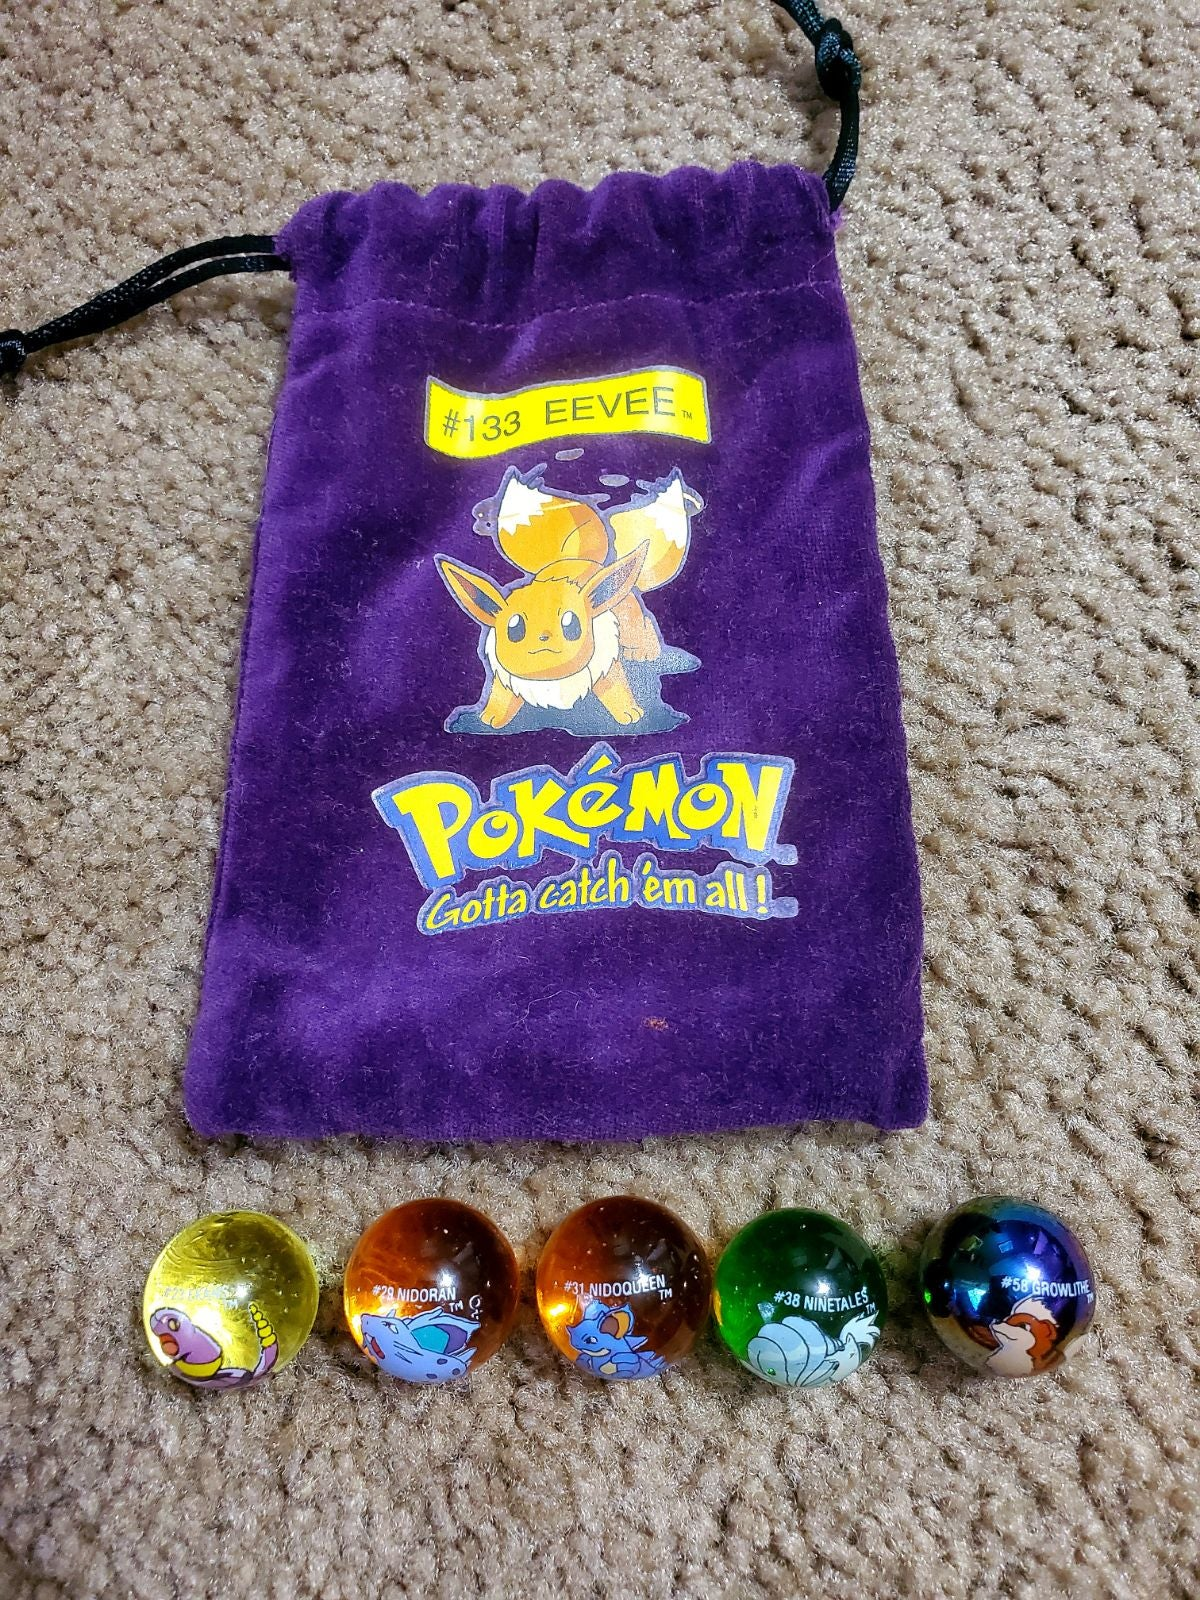 Pokemon marbles and bag